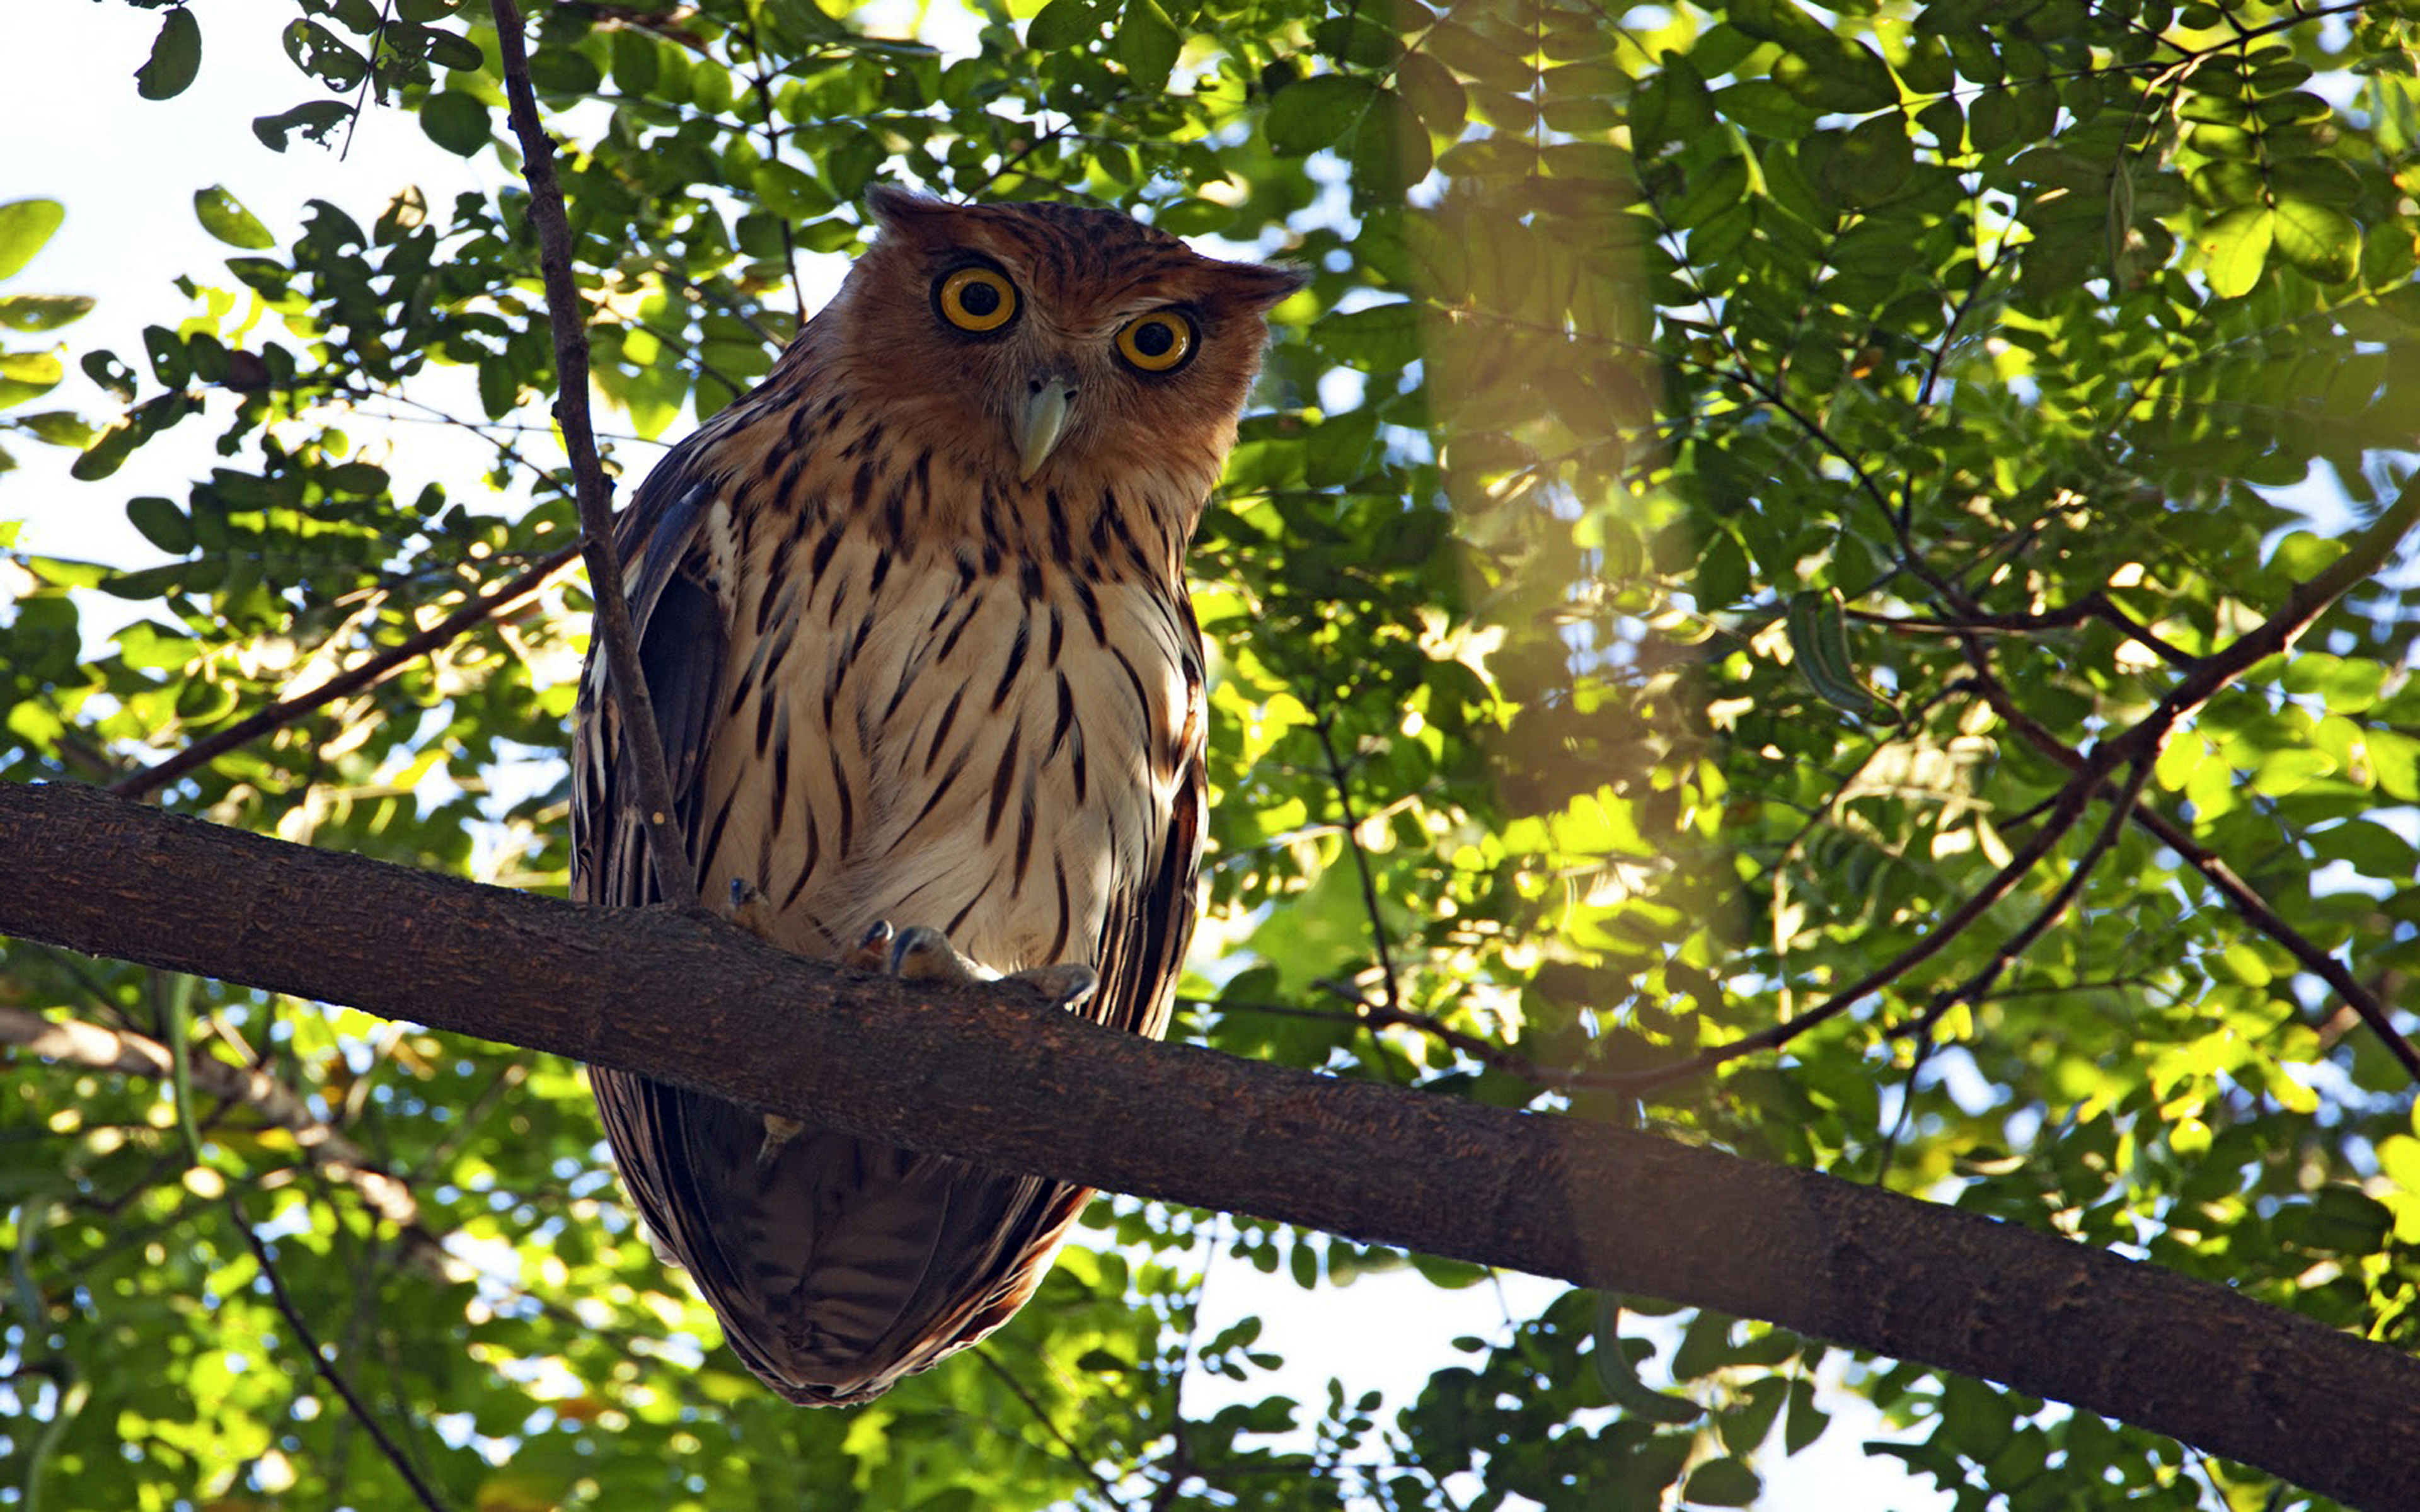 Fall Owl Wallpaper Philippine Eagle Owl Bubo Philippensis Birds Belonging